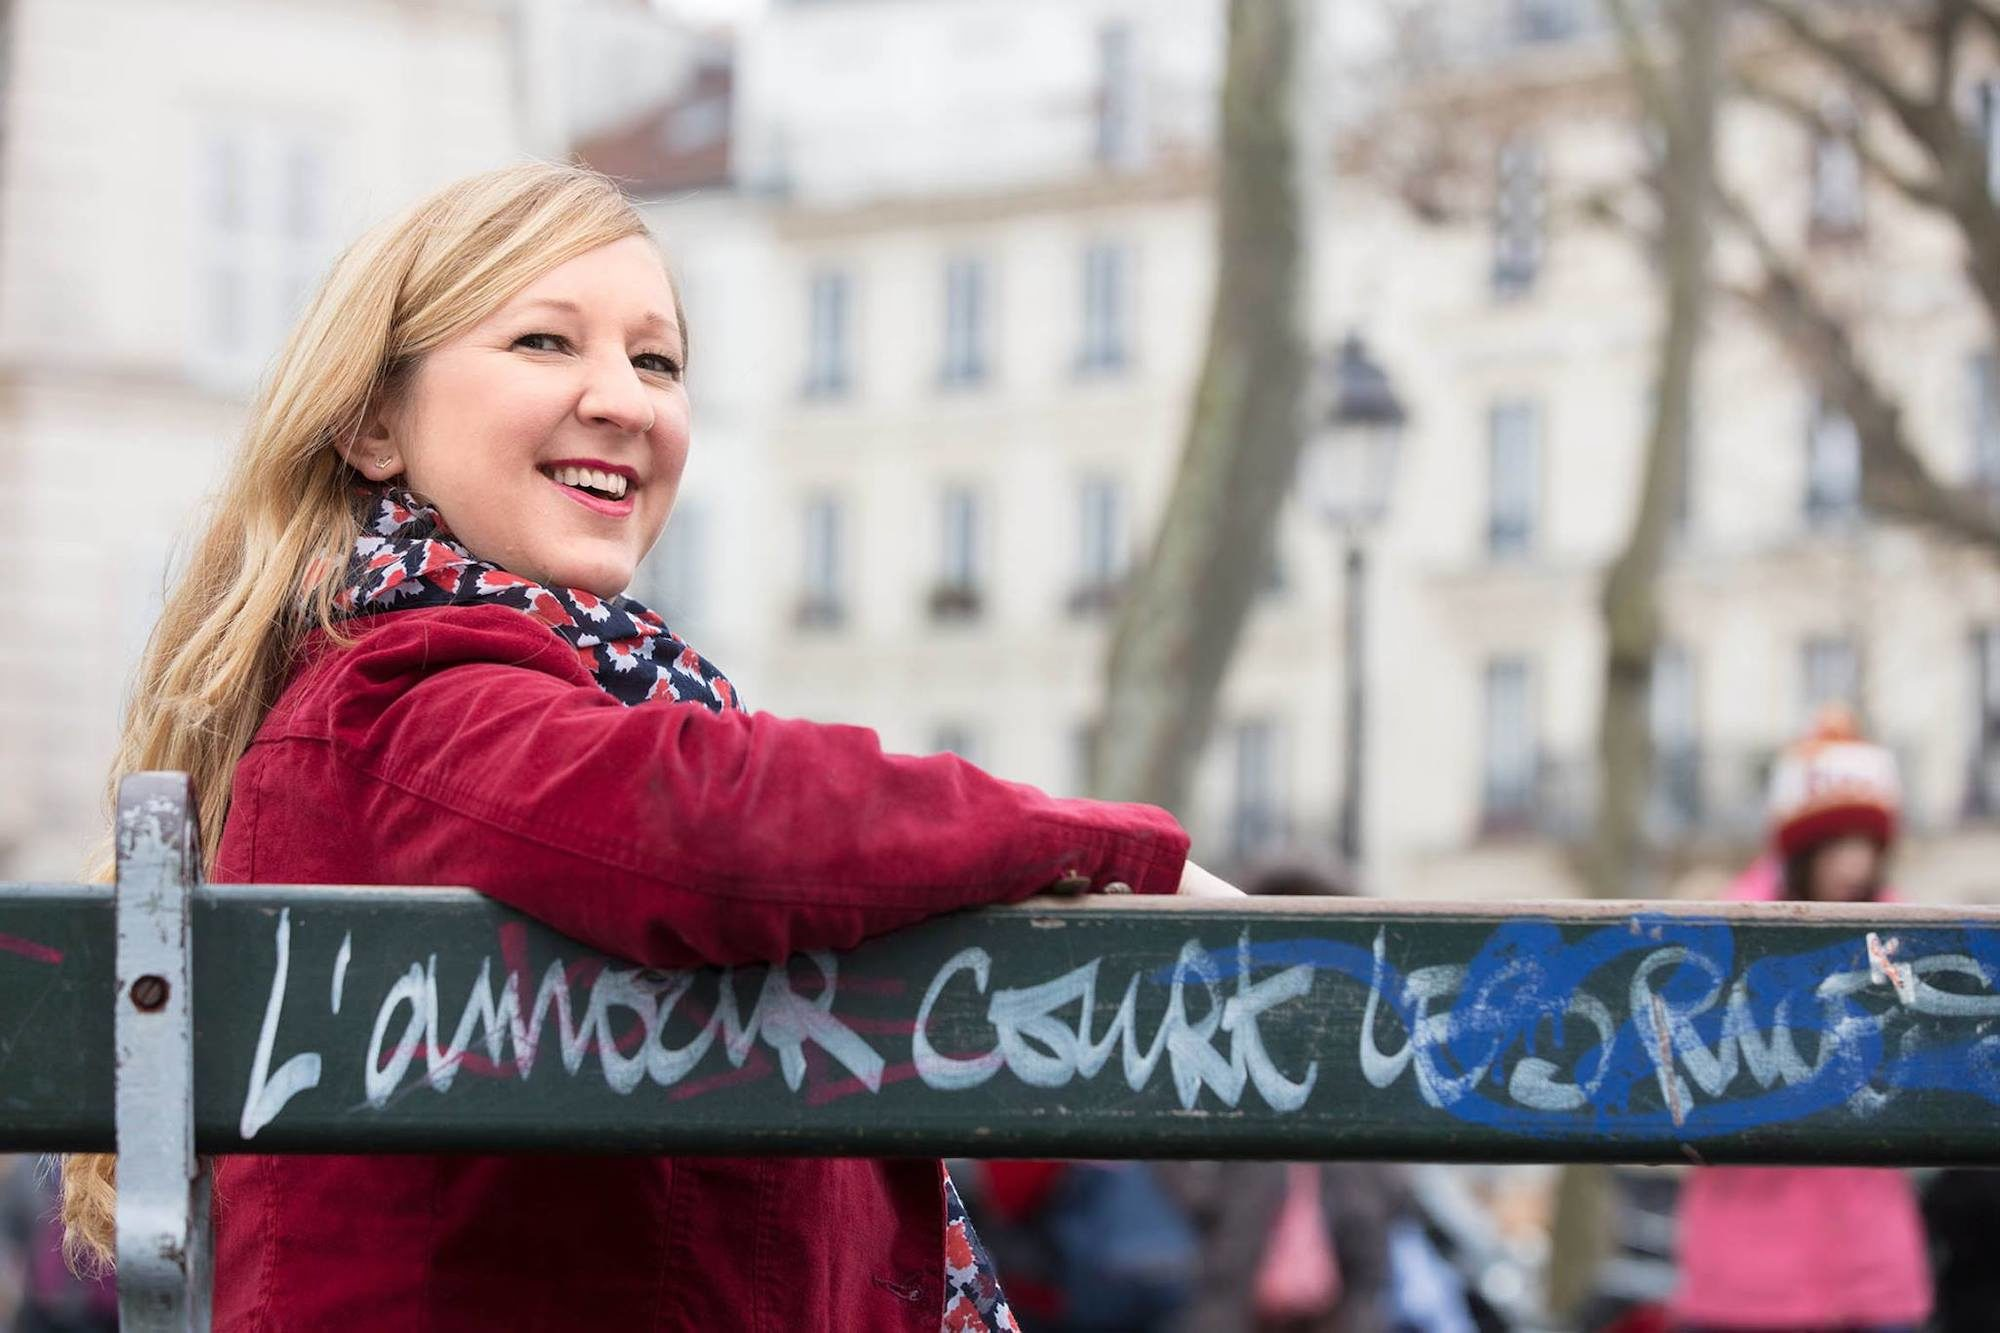 Expat blogger Lily Heise wearing a red jacket, sat on a Paris bench where the often-seen slogan 'Love runs through the streets' painted on it. She is smiling at the camera.